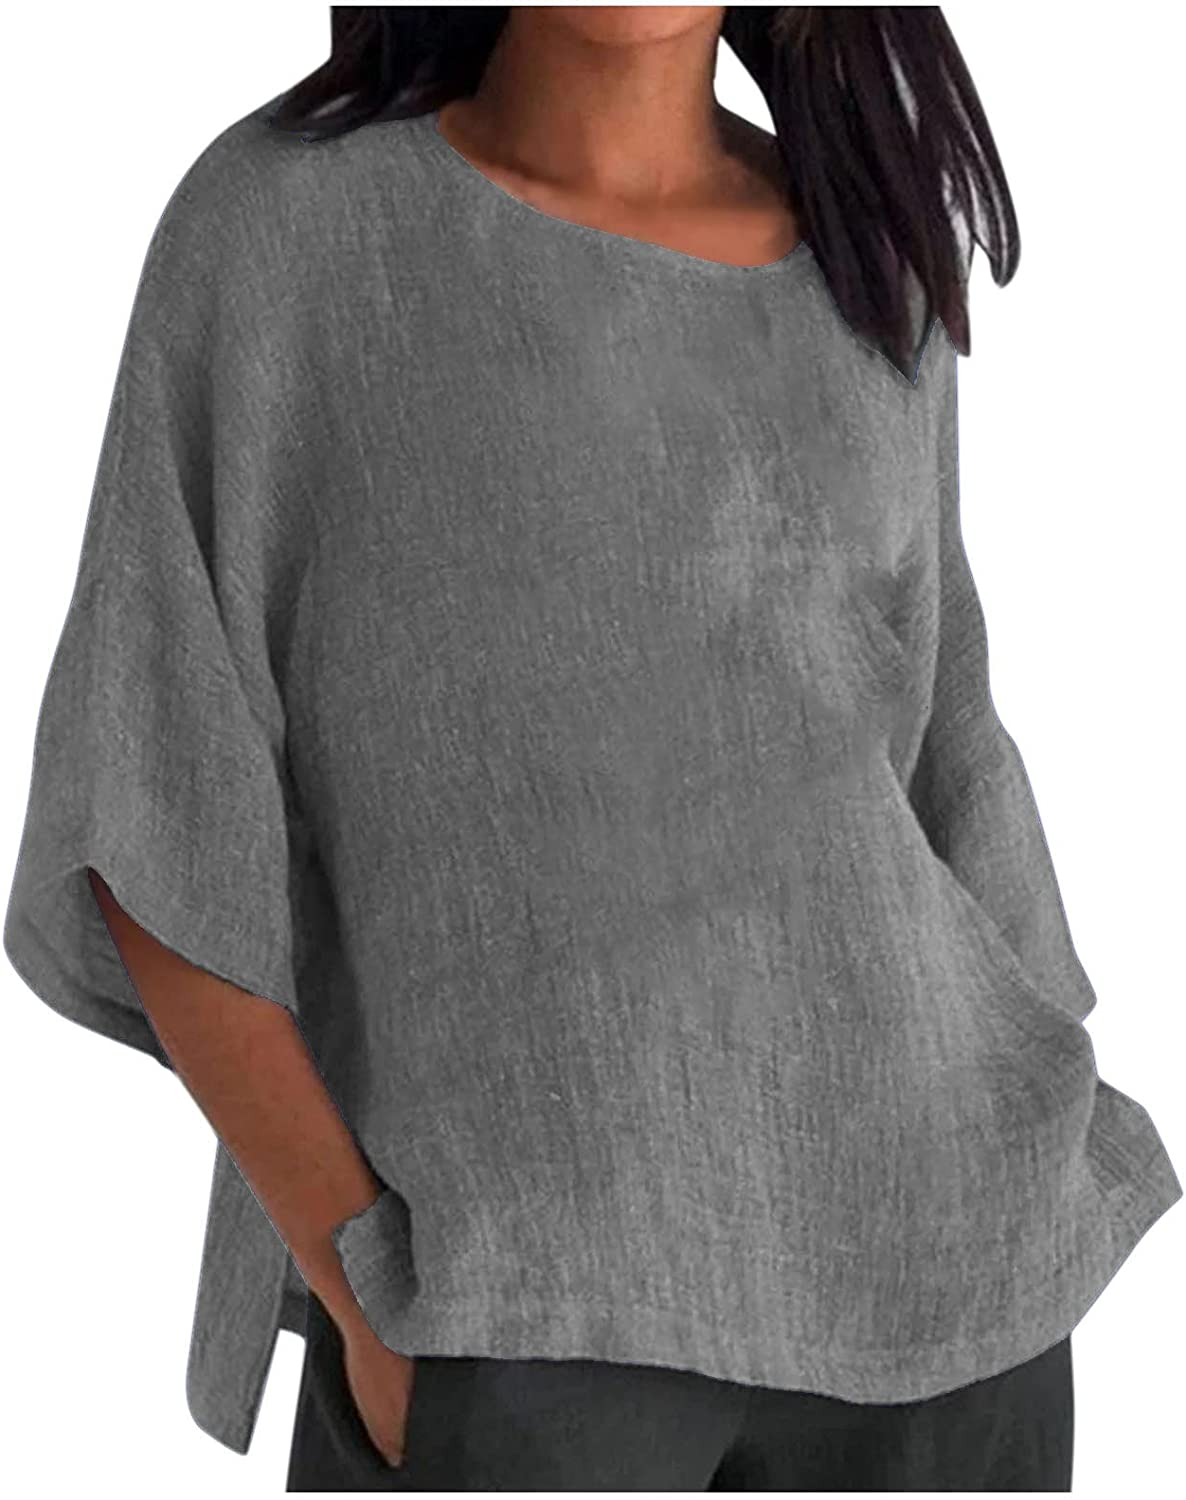 Women's Plus Size Cotton Linen Tops Summer Cropped Sleeve Solid V-Neck Loose Shirt Tunic Tops Blouse